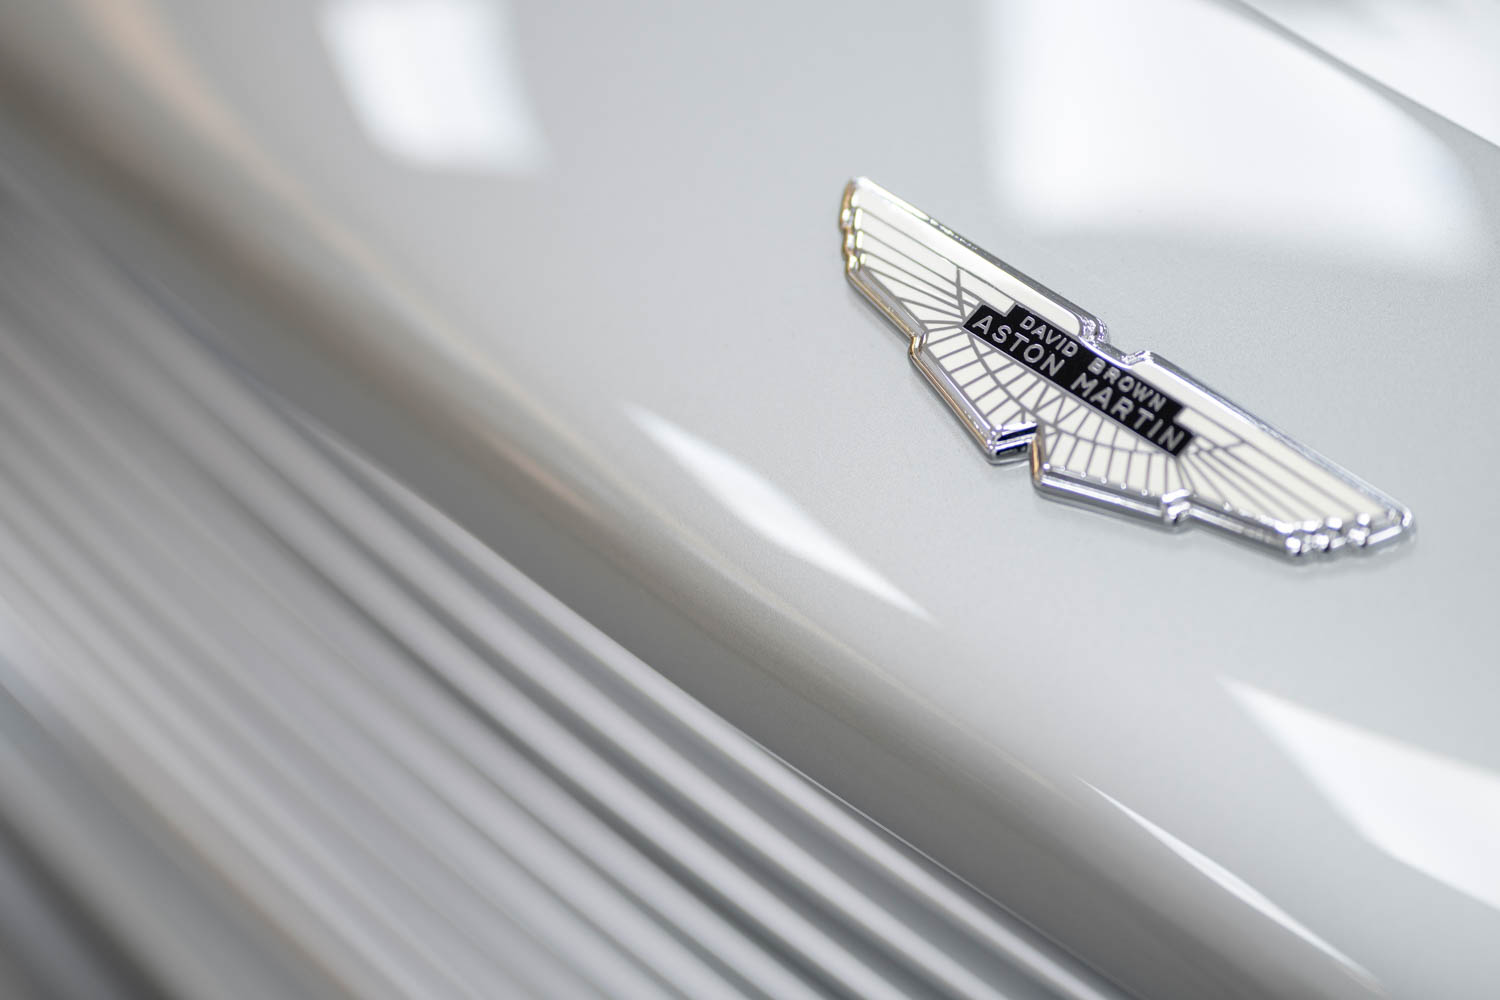 Aston Martin's Goldfinger DB5 continuation cars badge